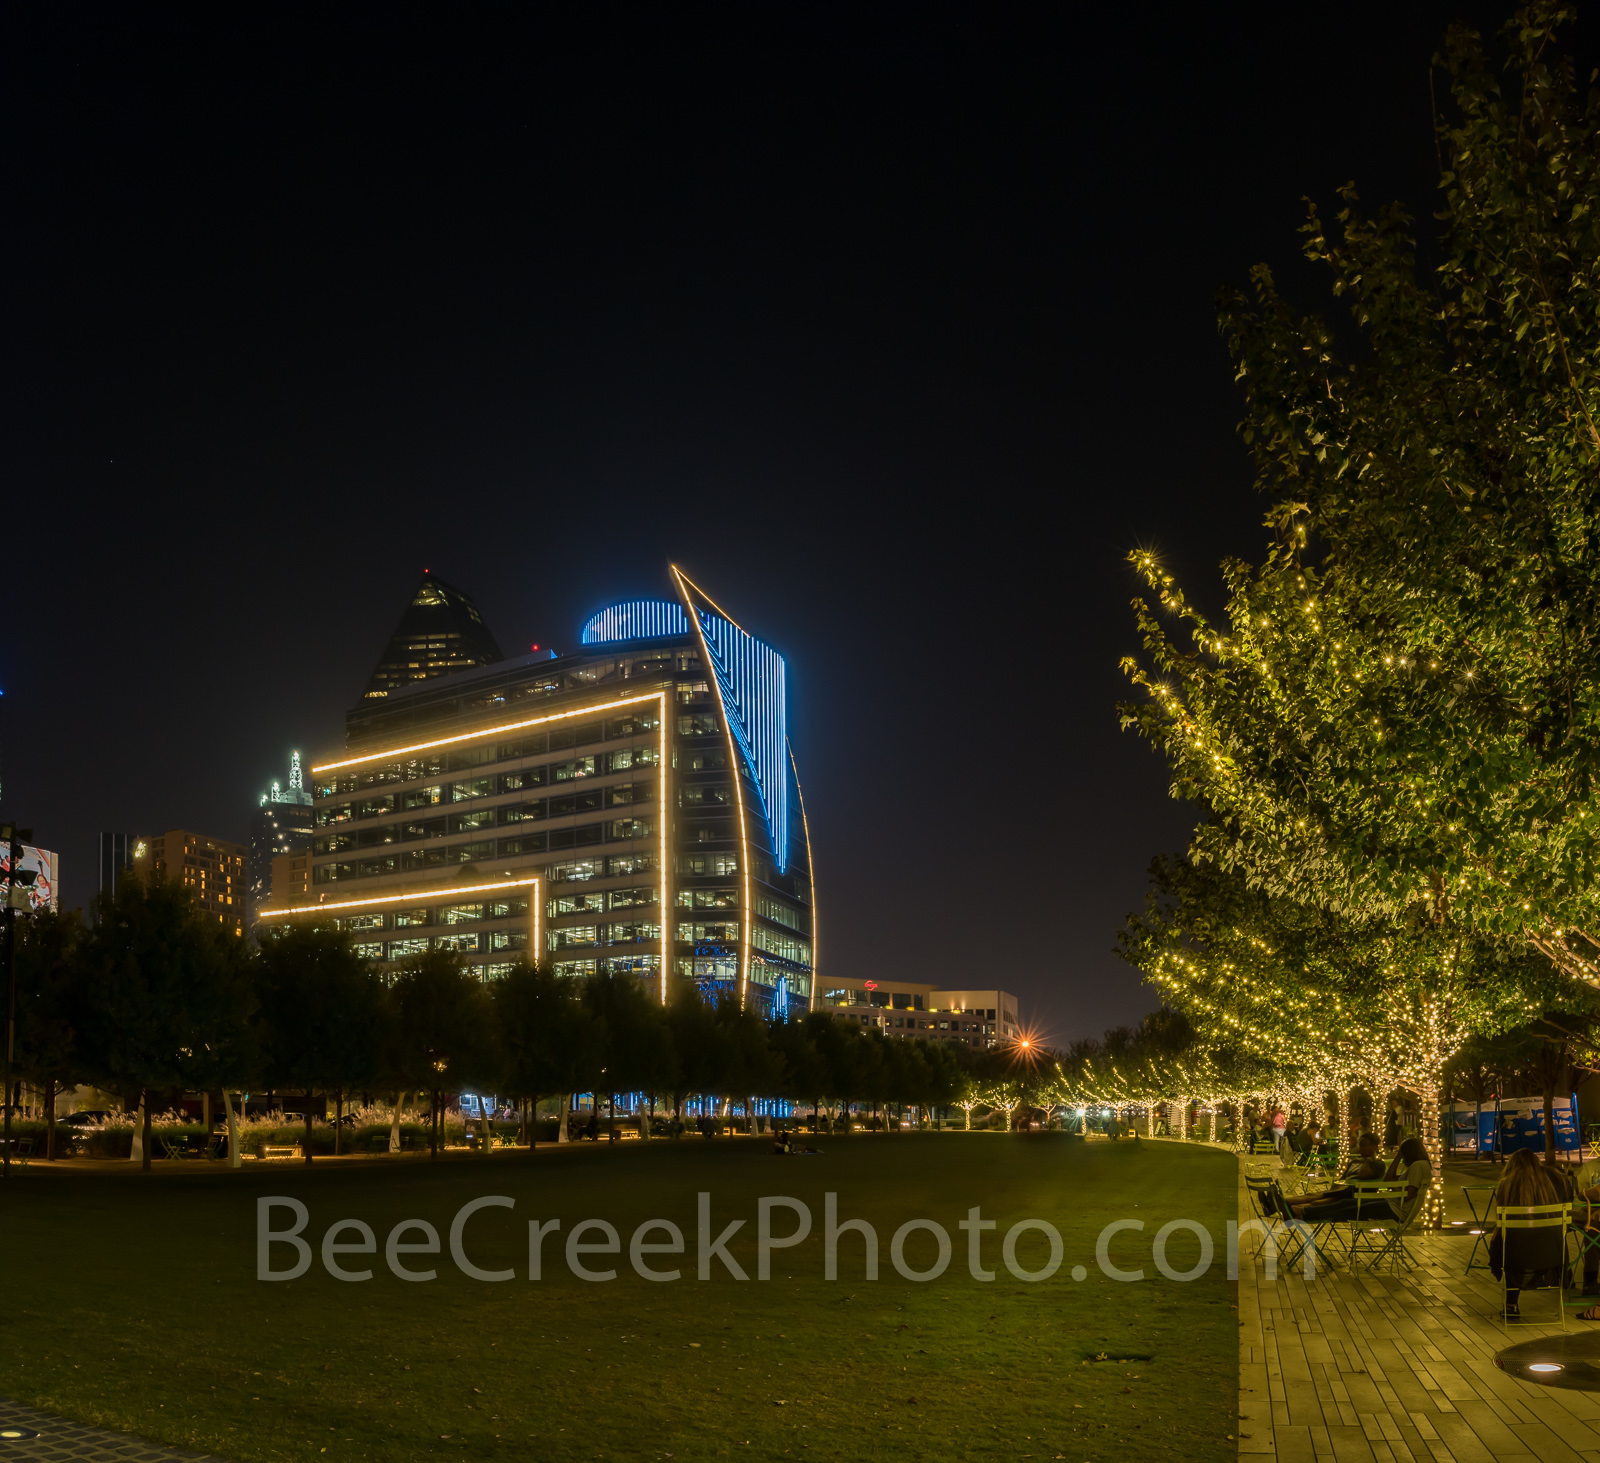 Dallas Klyde Warren Park, dark, trees, colorful Hunt Oil Building, blue lights, Dallas Cowboys, stock photos, pano, panorama,, photo